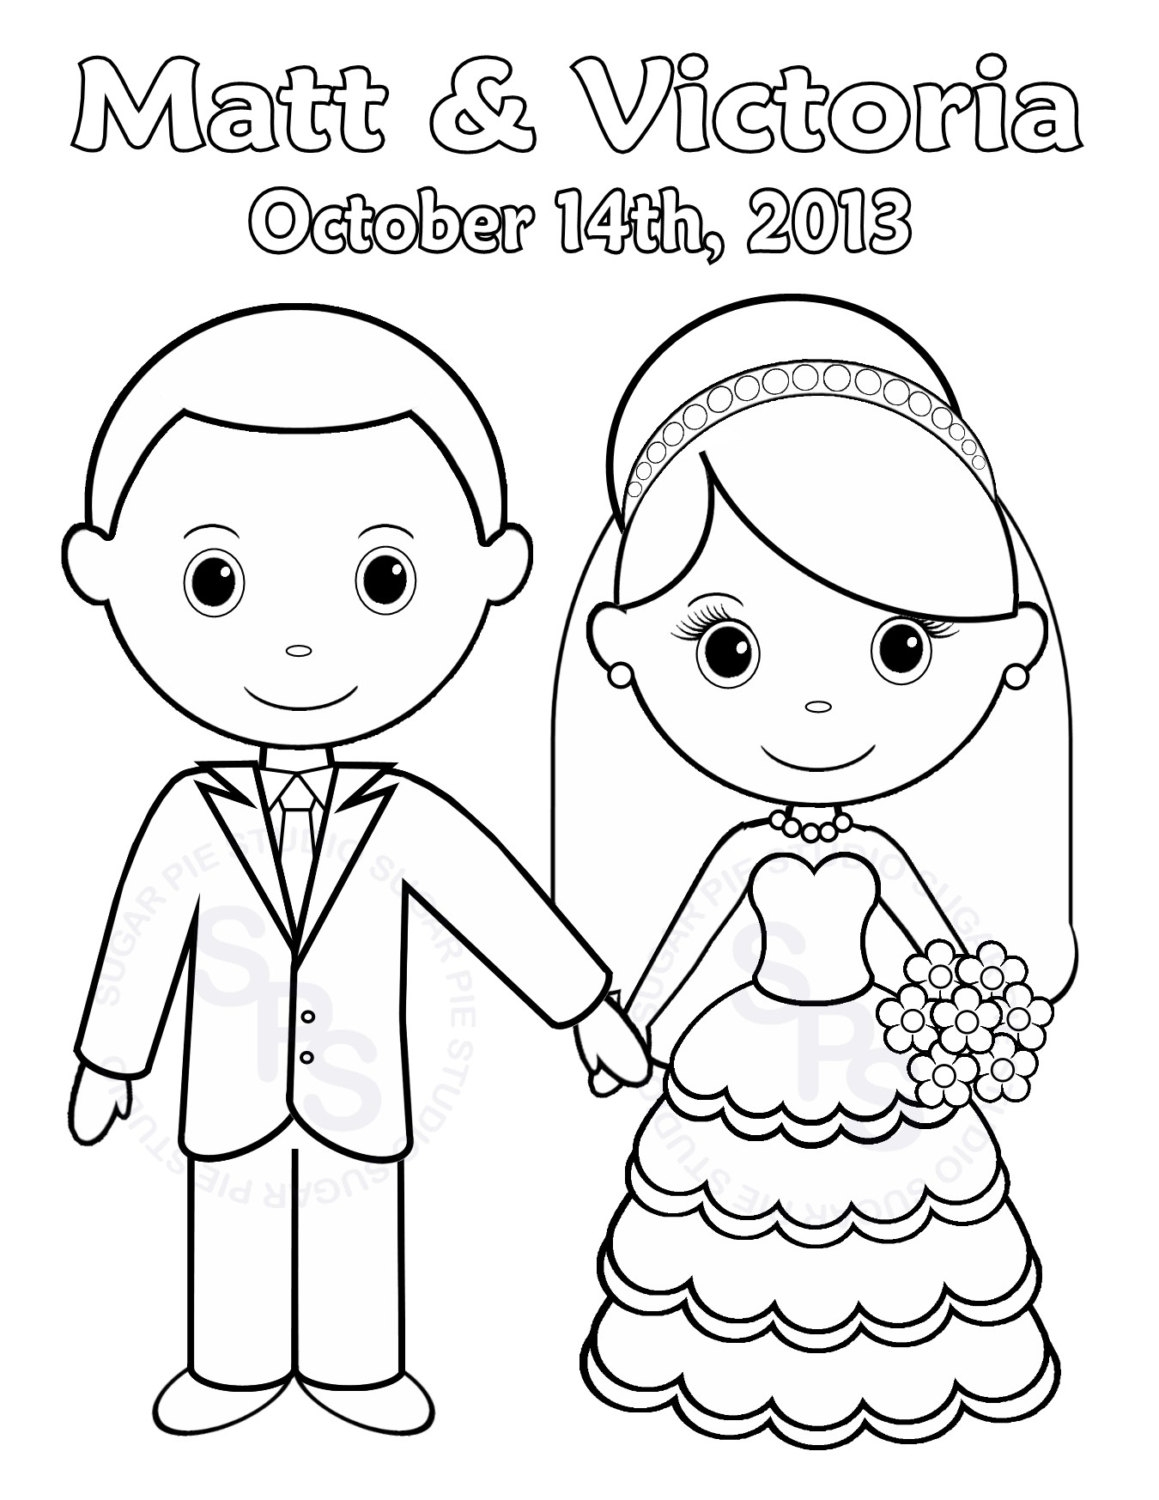 Wedding Cartoon Drawing